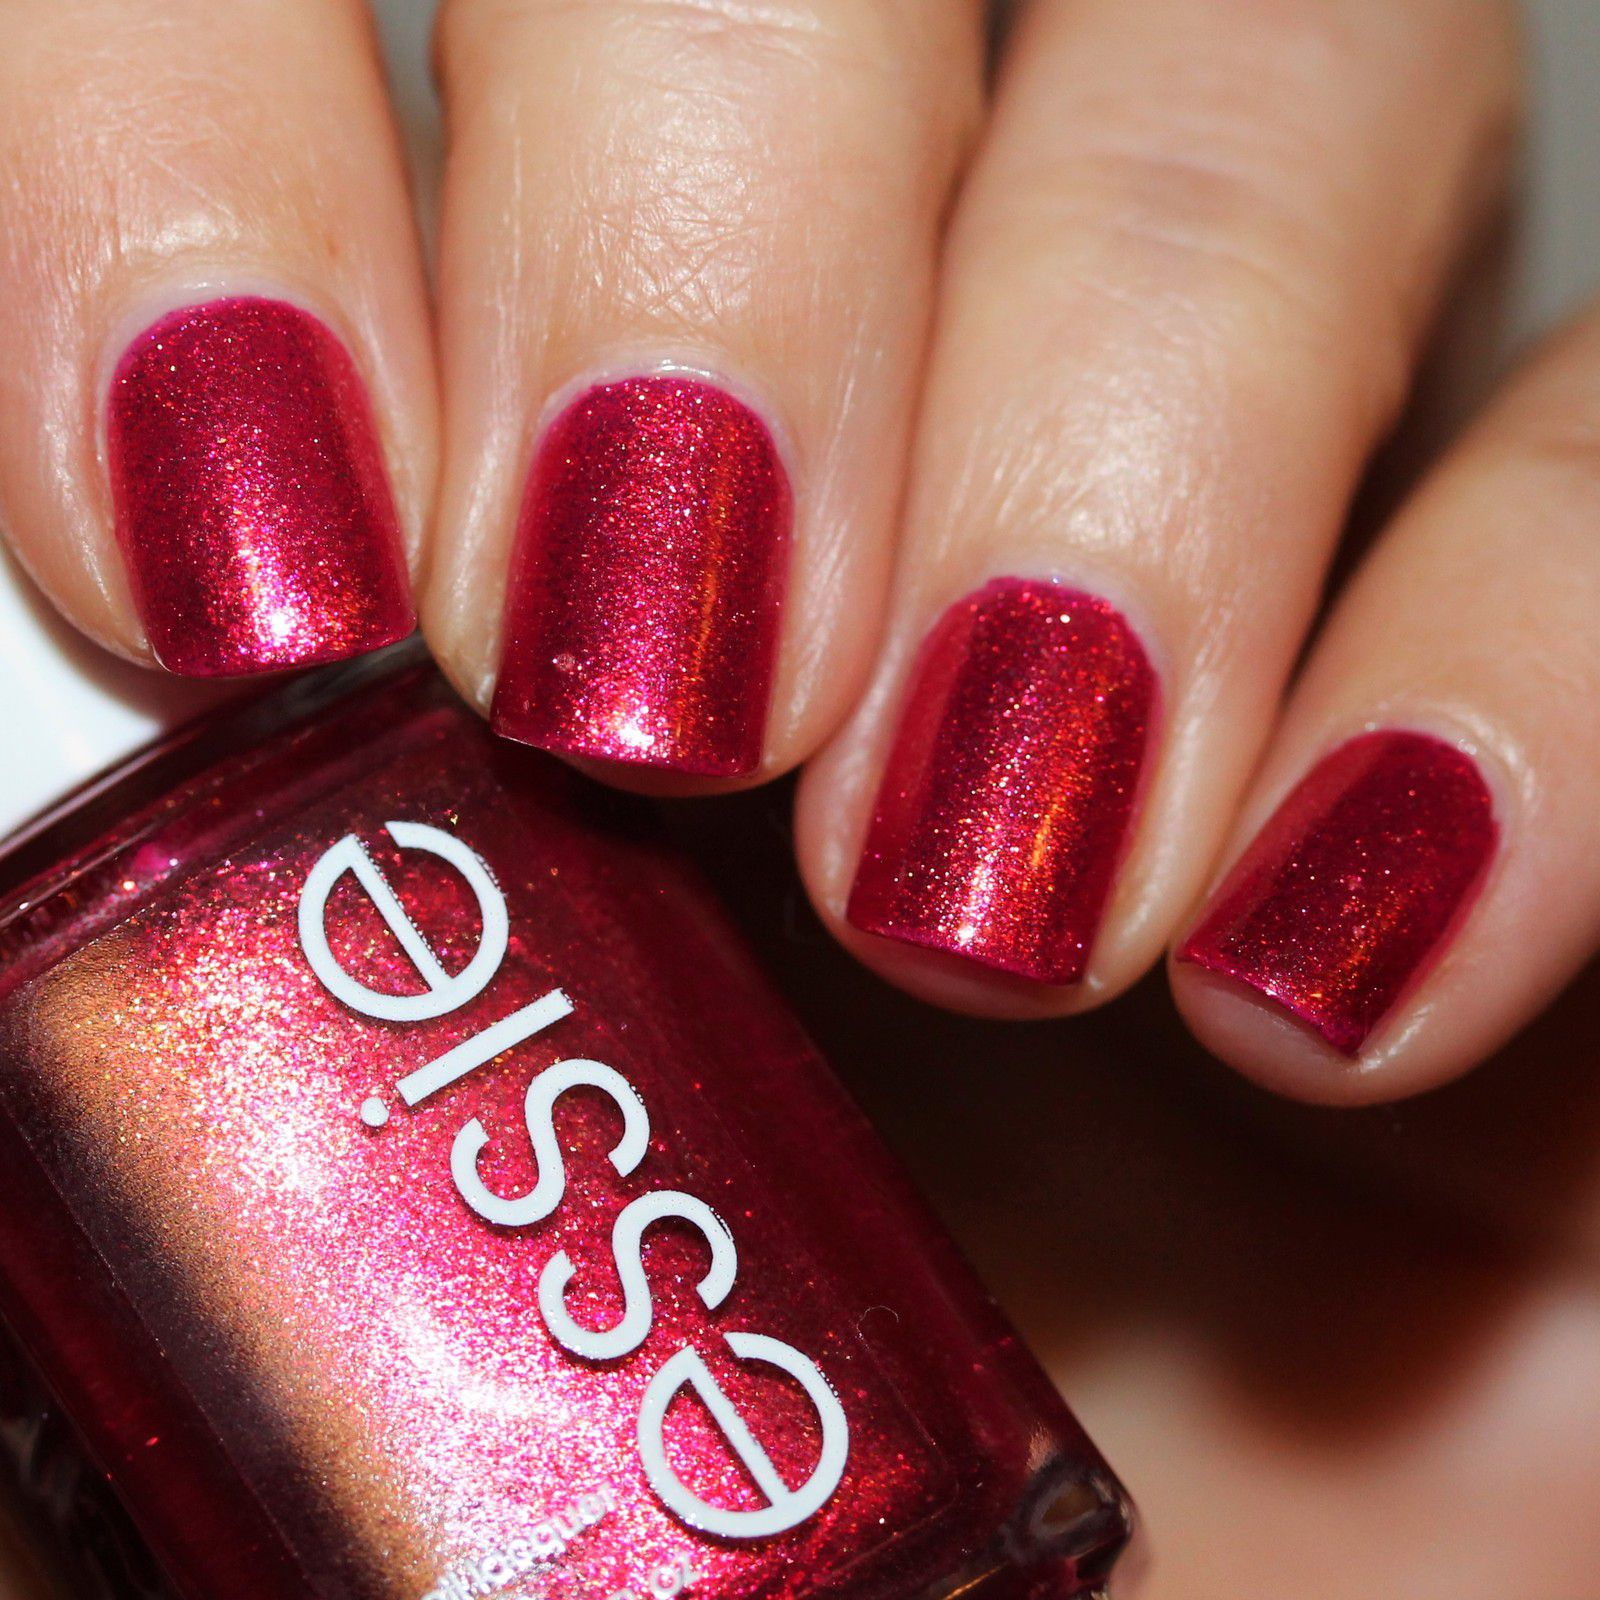 Essie Protein Base Coat / Essie In a Gingersnap / Essie Gel Top Coat